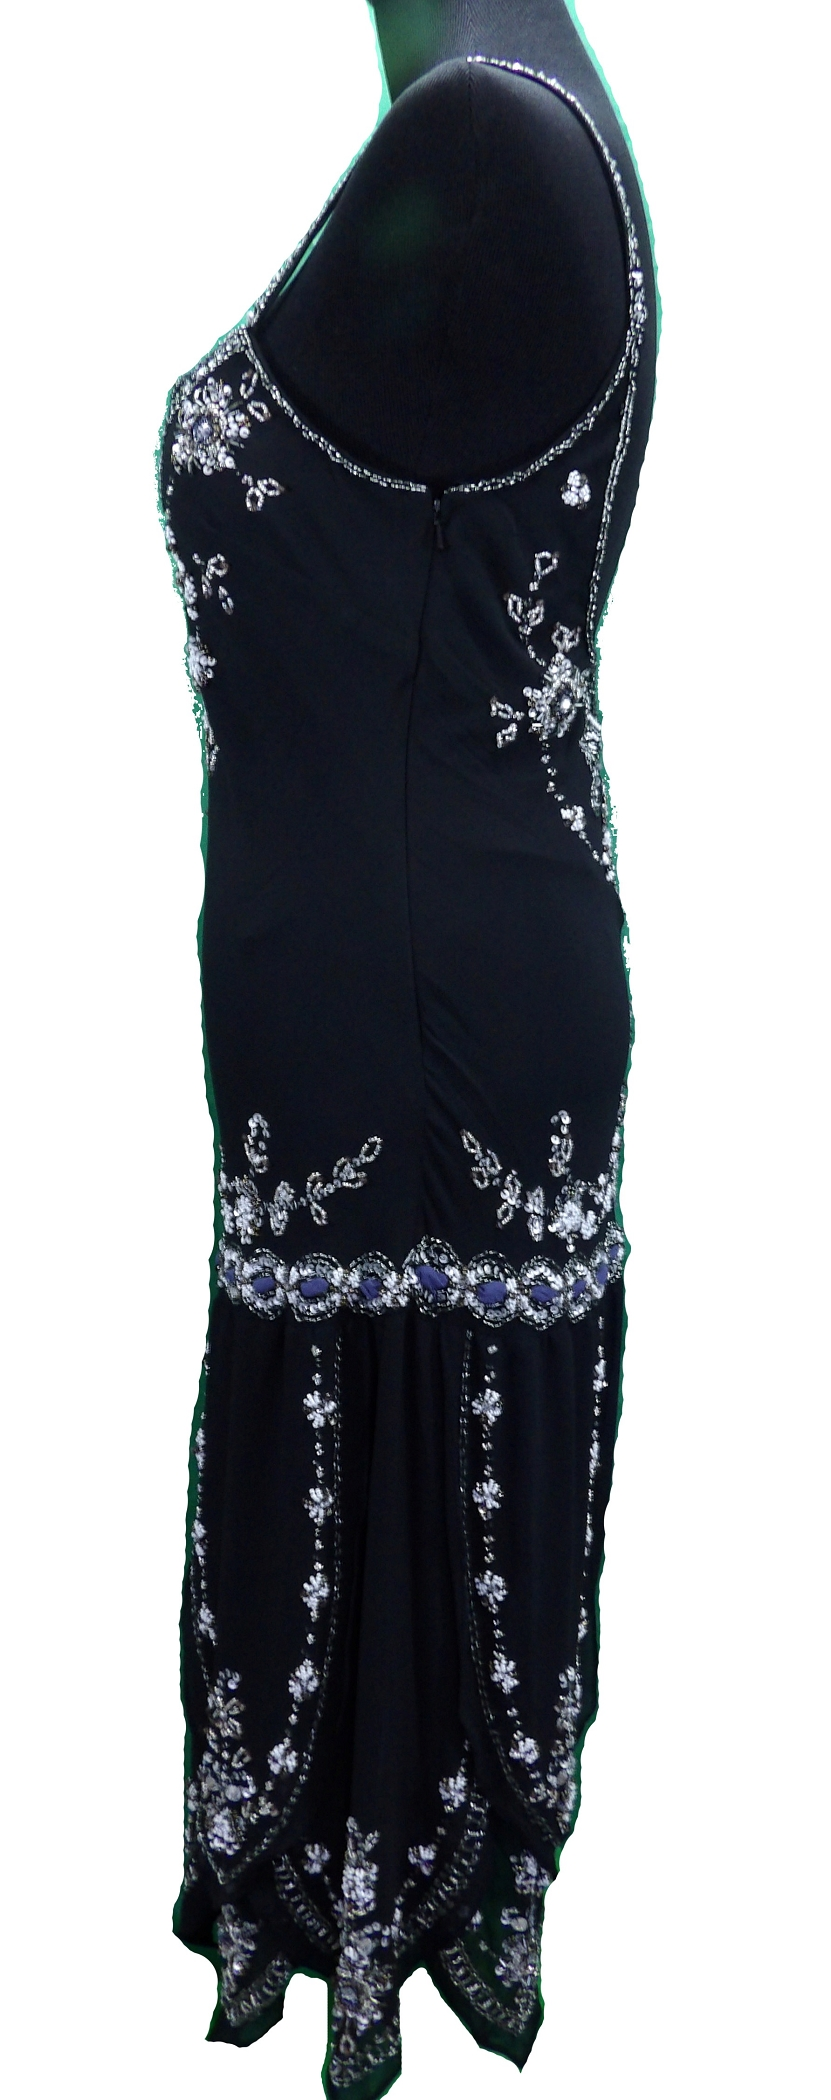 1920s style vintage look flapper sequin deco gatsby charleston dress hairstyles